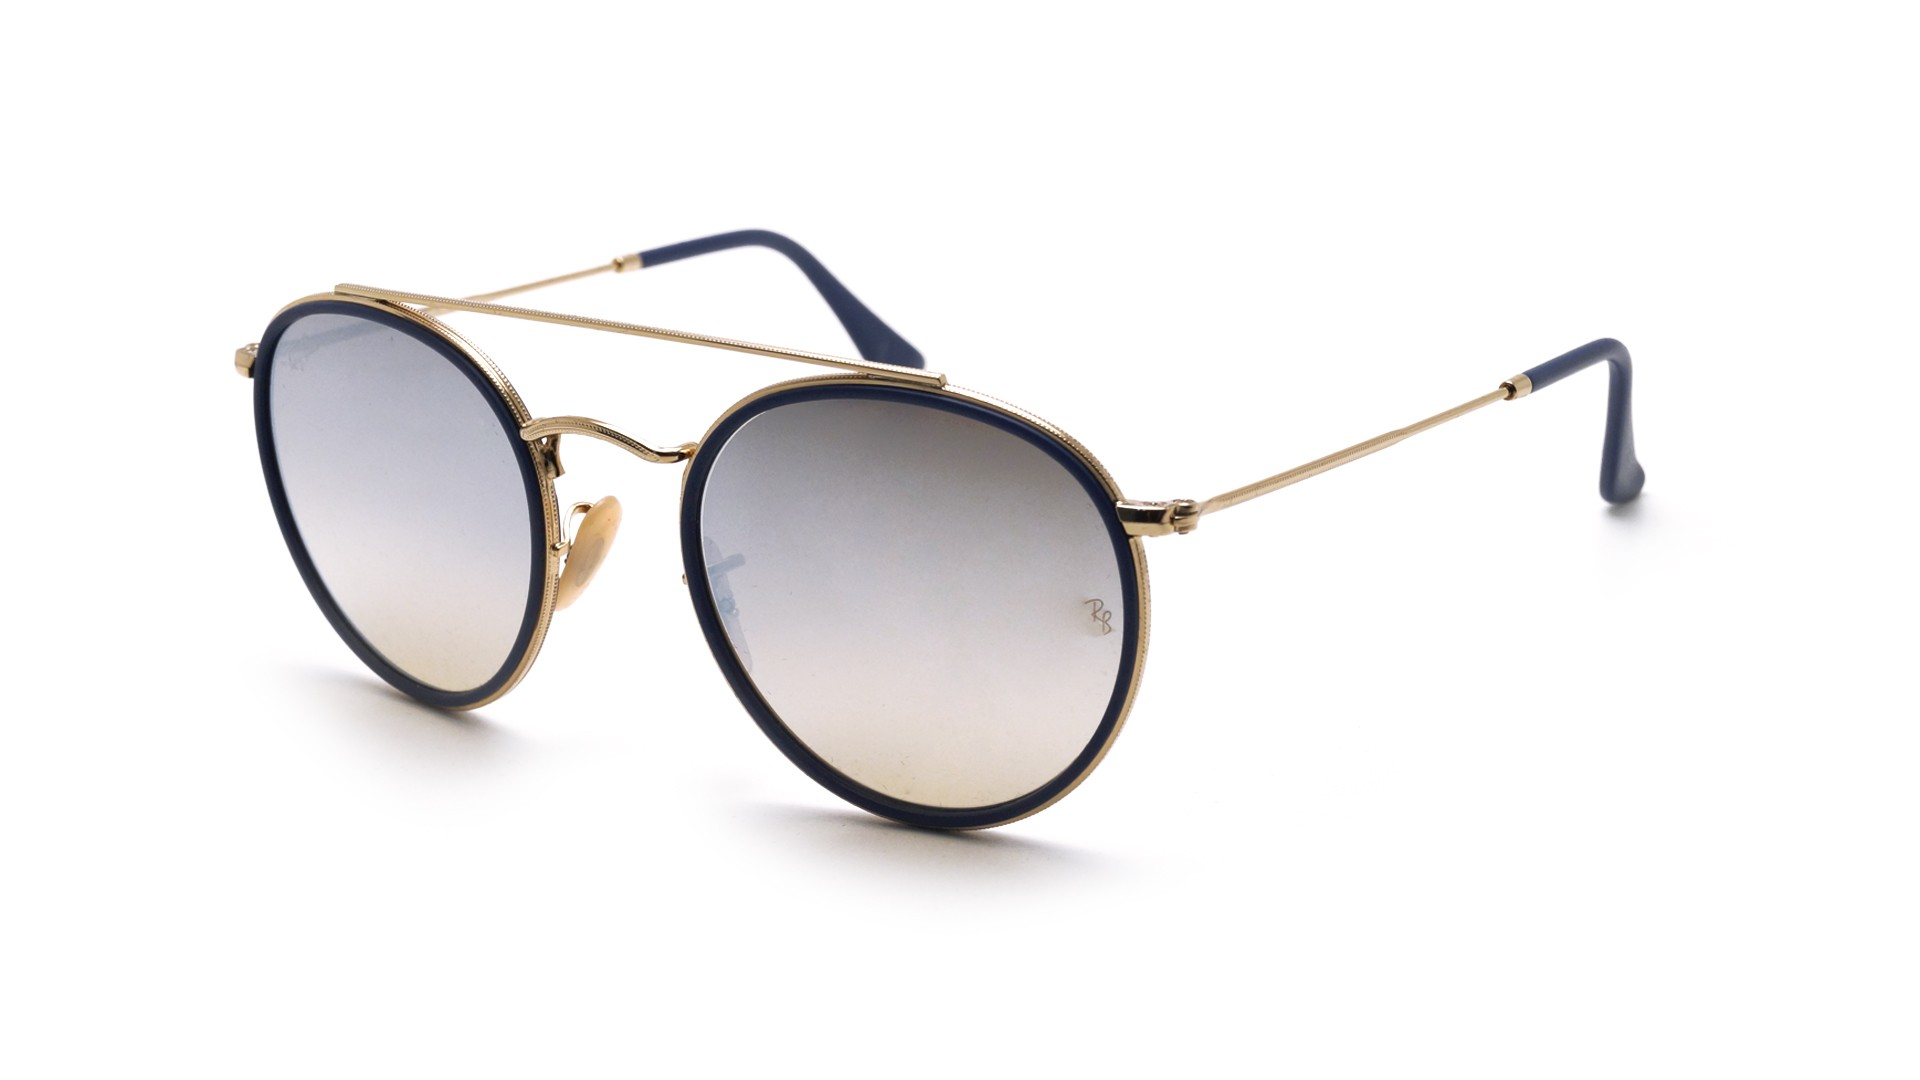 Sunglasses Ray-Ban Round Double Bridge Gold RB3647N 001 9U 51-22 Medium  Gradient Mirror 2873f086ef